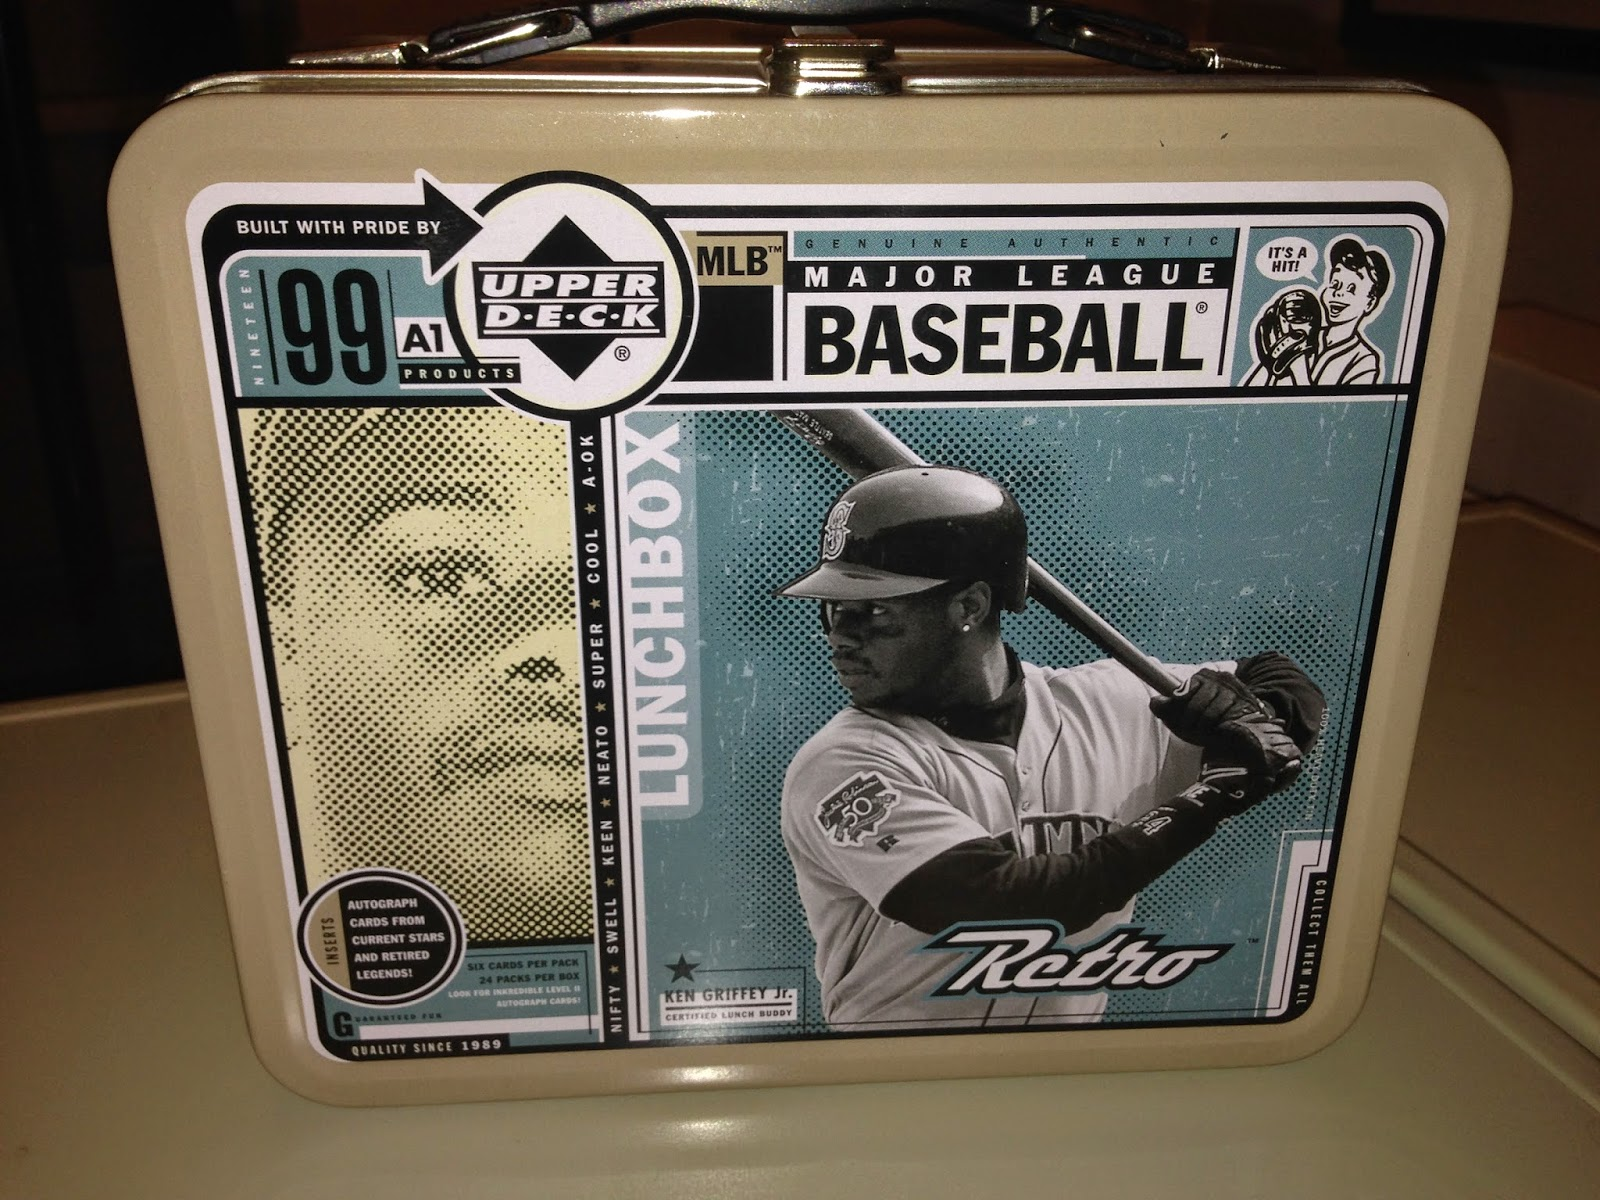 f123687e82 1999 Upper Deck Retro was sold in metal lunch boxes. This is a novel idea  that I'm surprised no one else has done. The condition is solid for being  15 years ...